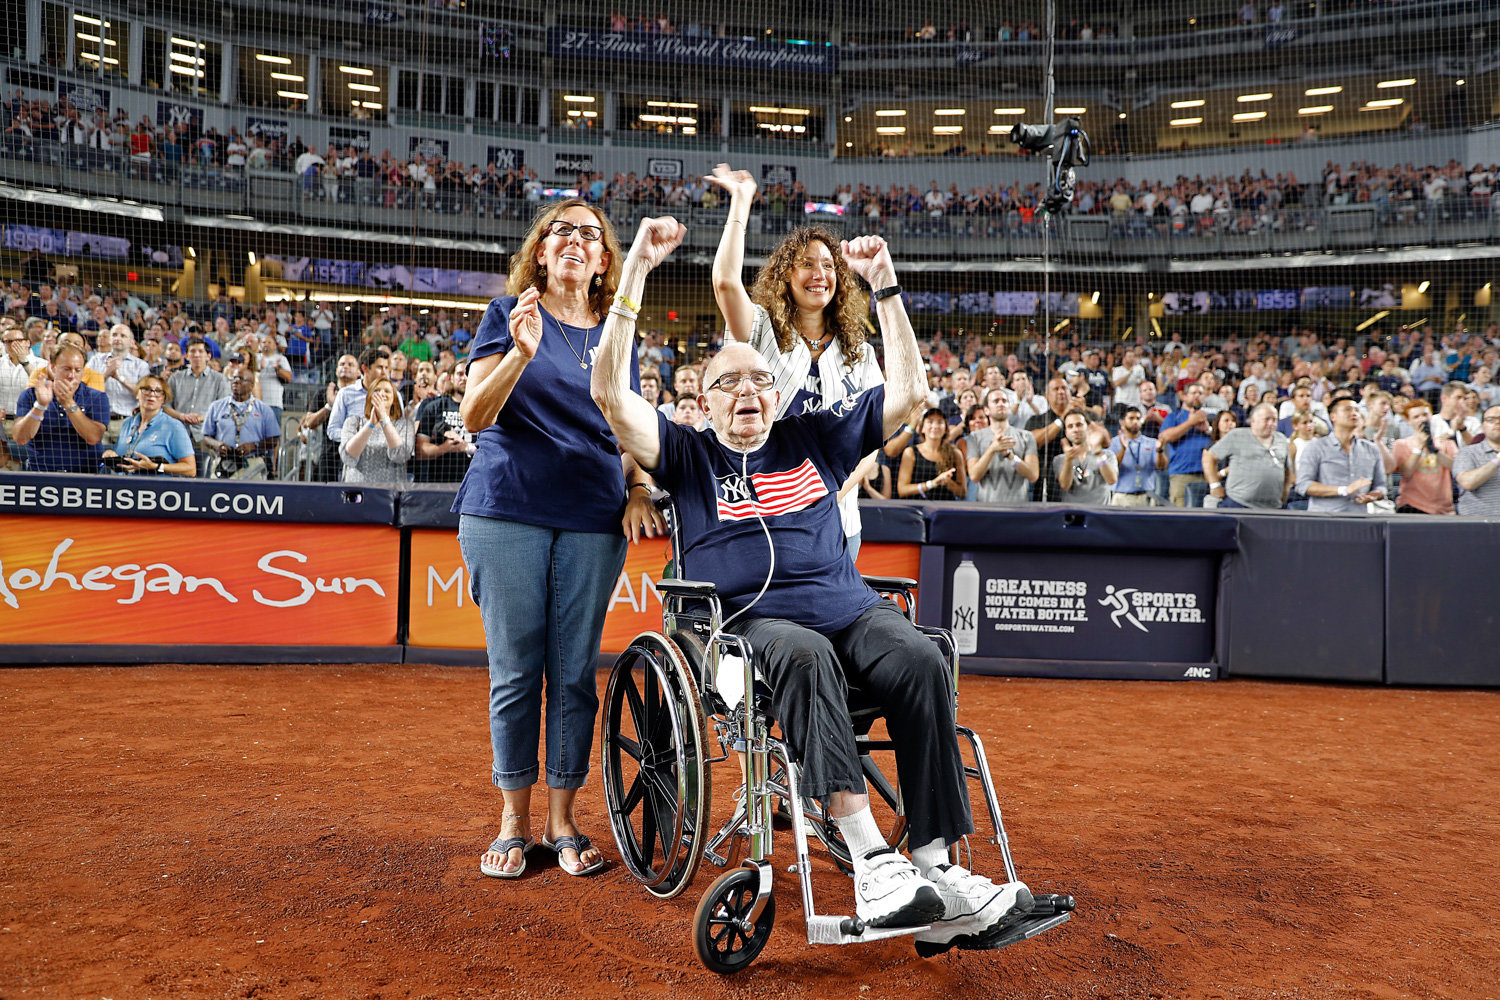 Alfred Schwartz cheers on the diamond at Yankee Stadium in 2018, joined by daughters Gayle and Heidi, right, who now grieve for him following his death on April 8 from complications related to COVID-19.